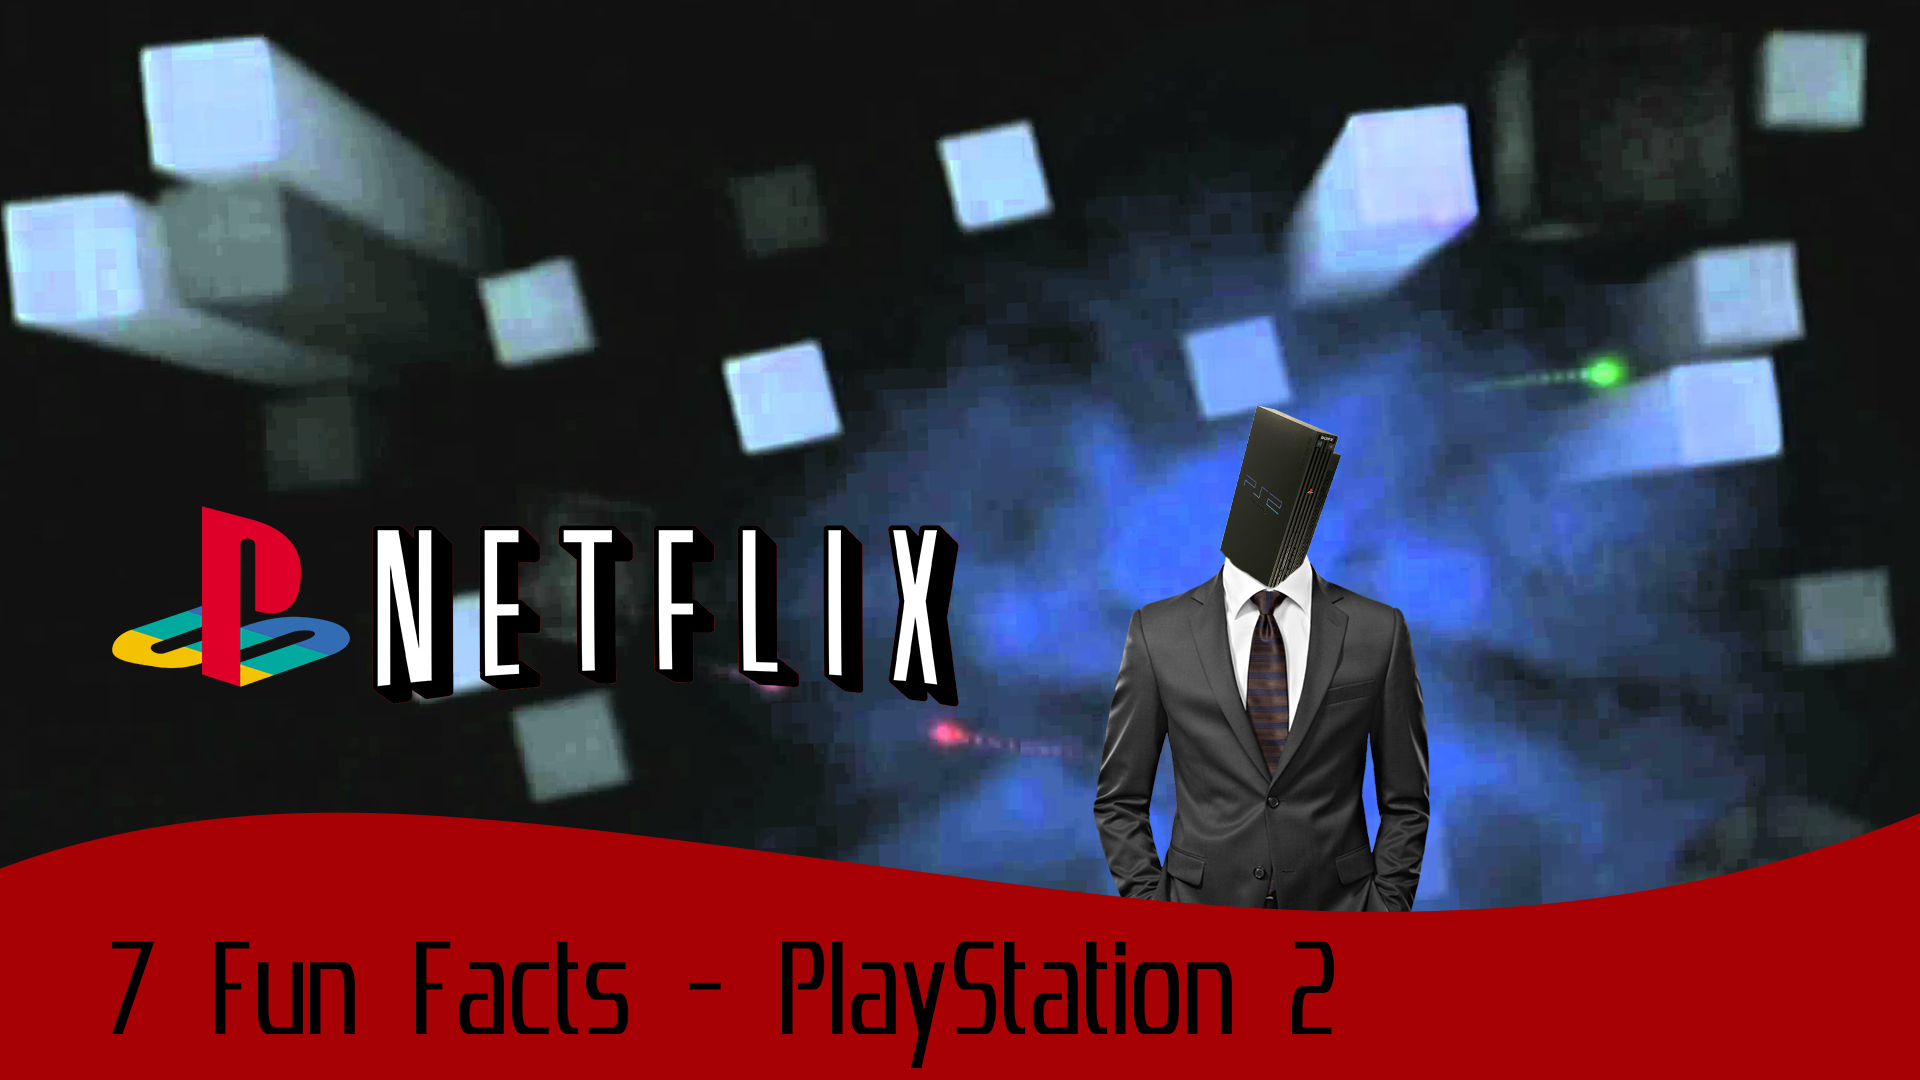 7 fun facts about the PlayStation 2